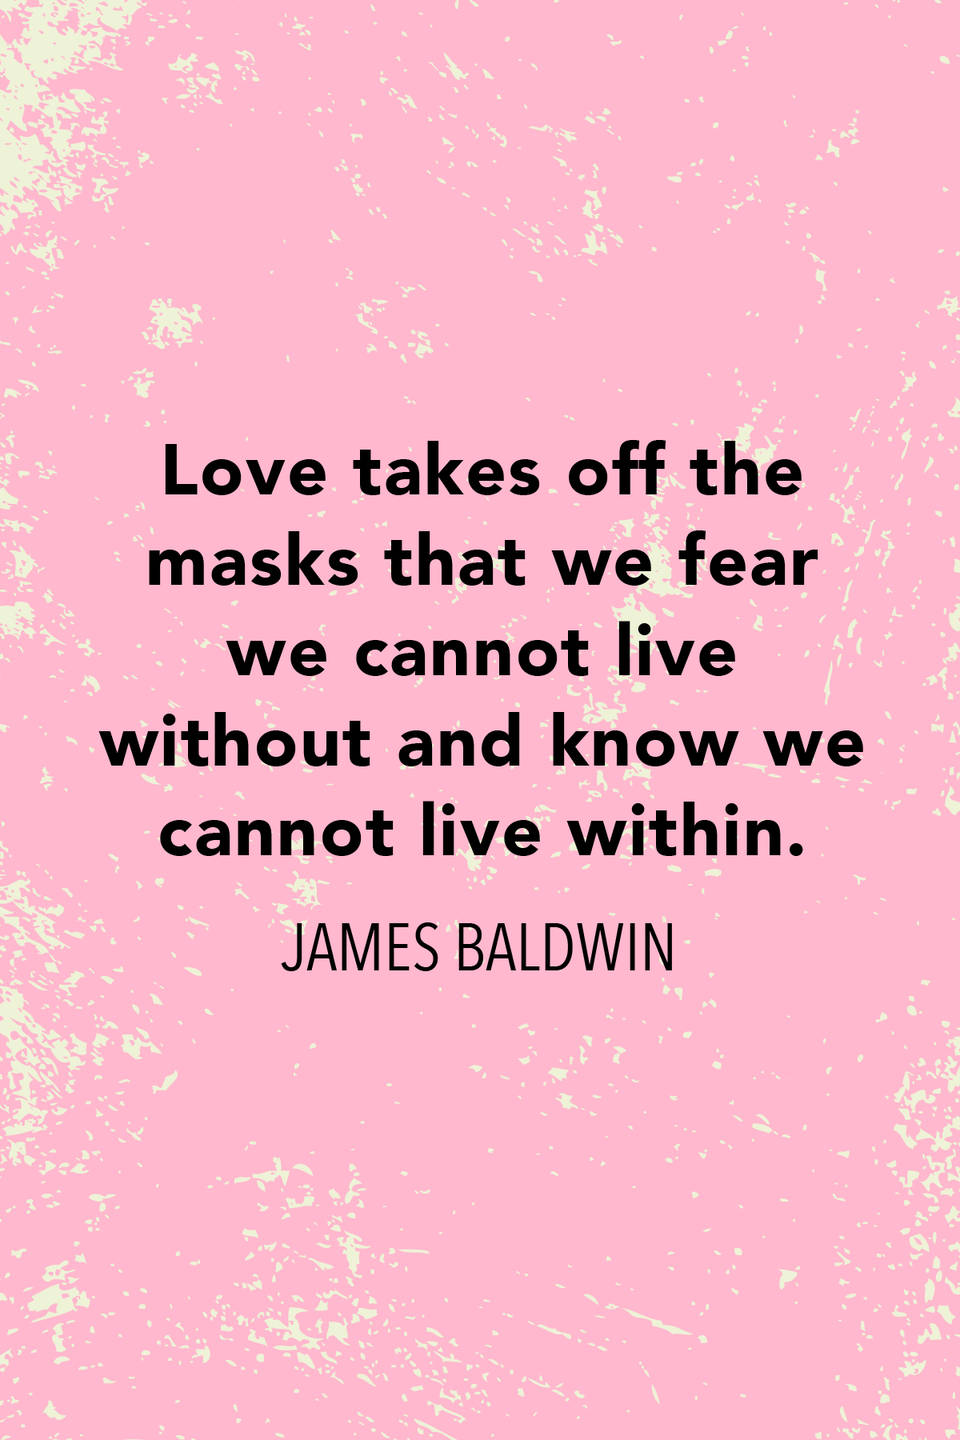 """<p>""""Love takes off the masks that we fear we cannot live without and know we cannot live within,"""" Baldwin wrote in his best-selling 1963 novel <a href=""""https://www.amazon.com/Fire-Next-Time-James-Baldwin/dp/067974472X?tag=syn-yahoo-20&ascsubtag=%5Bartid%7C10072.g.32842156%5Bsrc%7Cyahoo-us"""" rel=""""nofollow noopener"""" target=""""_blank"""" data-ylk=""""slk:The Fire Next Time"""" class=""""link rapid-noclick-resp""""><em>The Fire Next Tim</em><em>e</em></a>.</p>"""